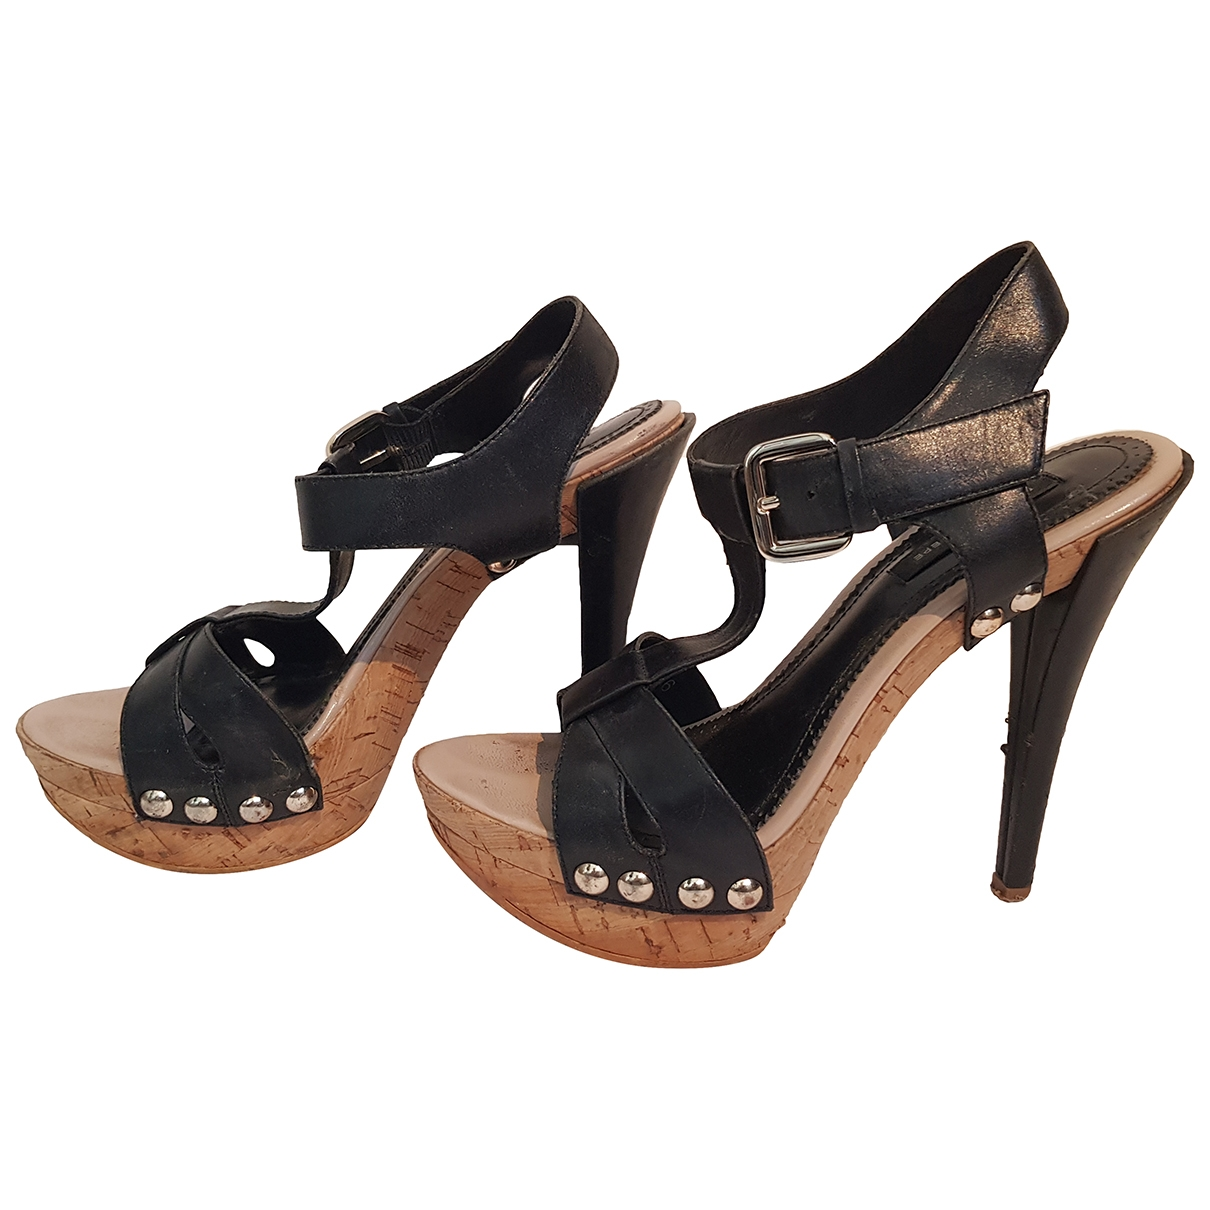 Patrizia Pepe \N Black Leather Sandals for Women 36 EU